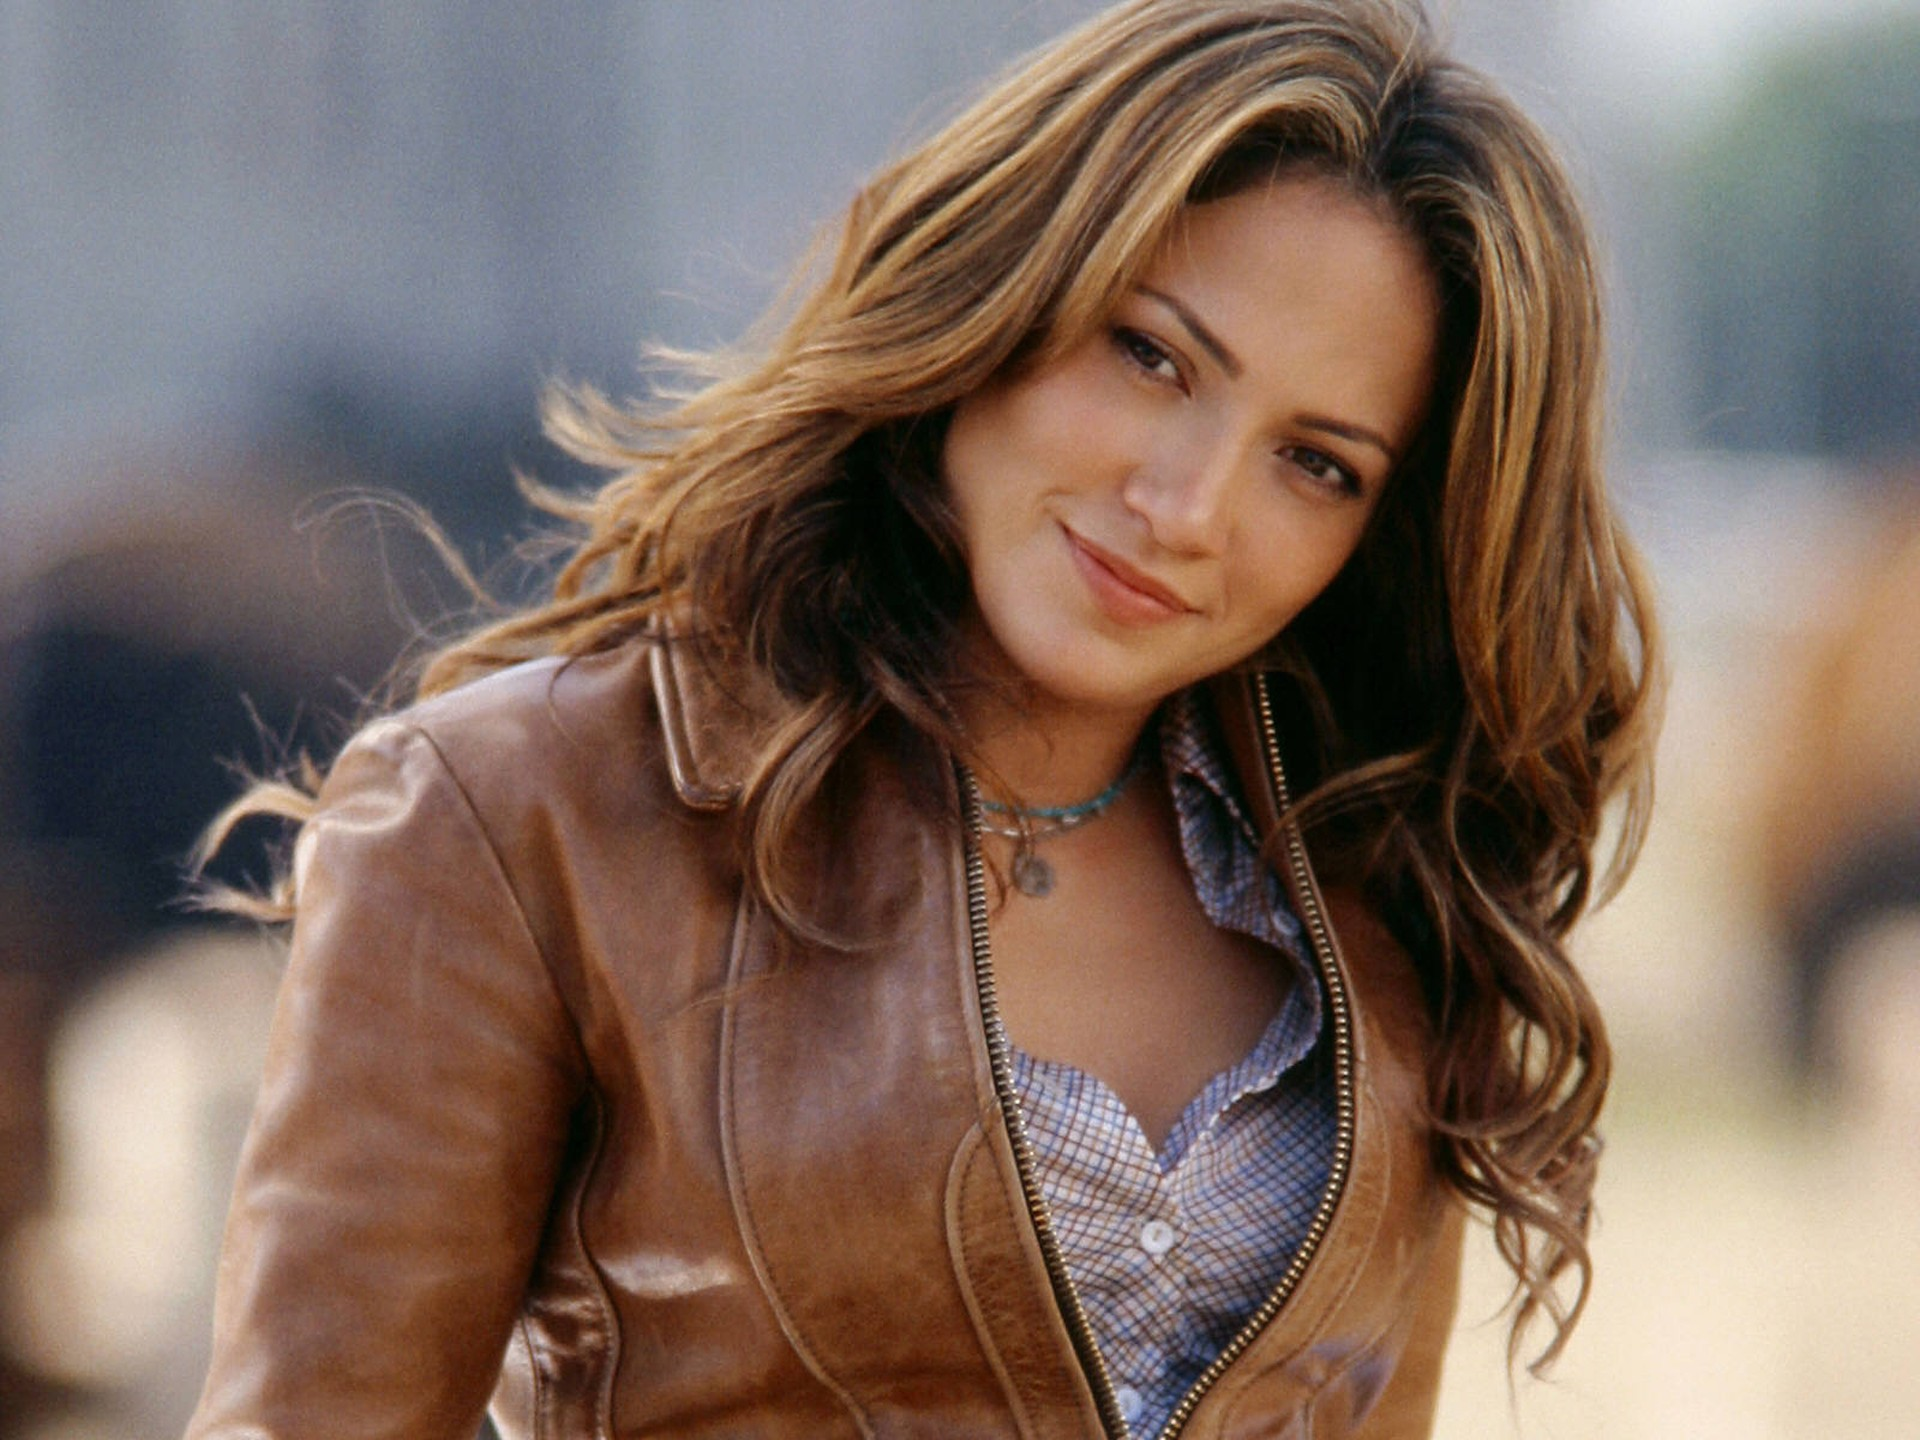 cute jennifer lopez hd mobile screen pictures free download